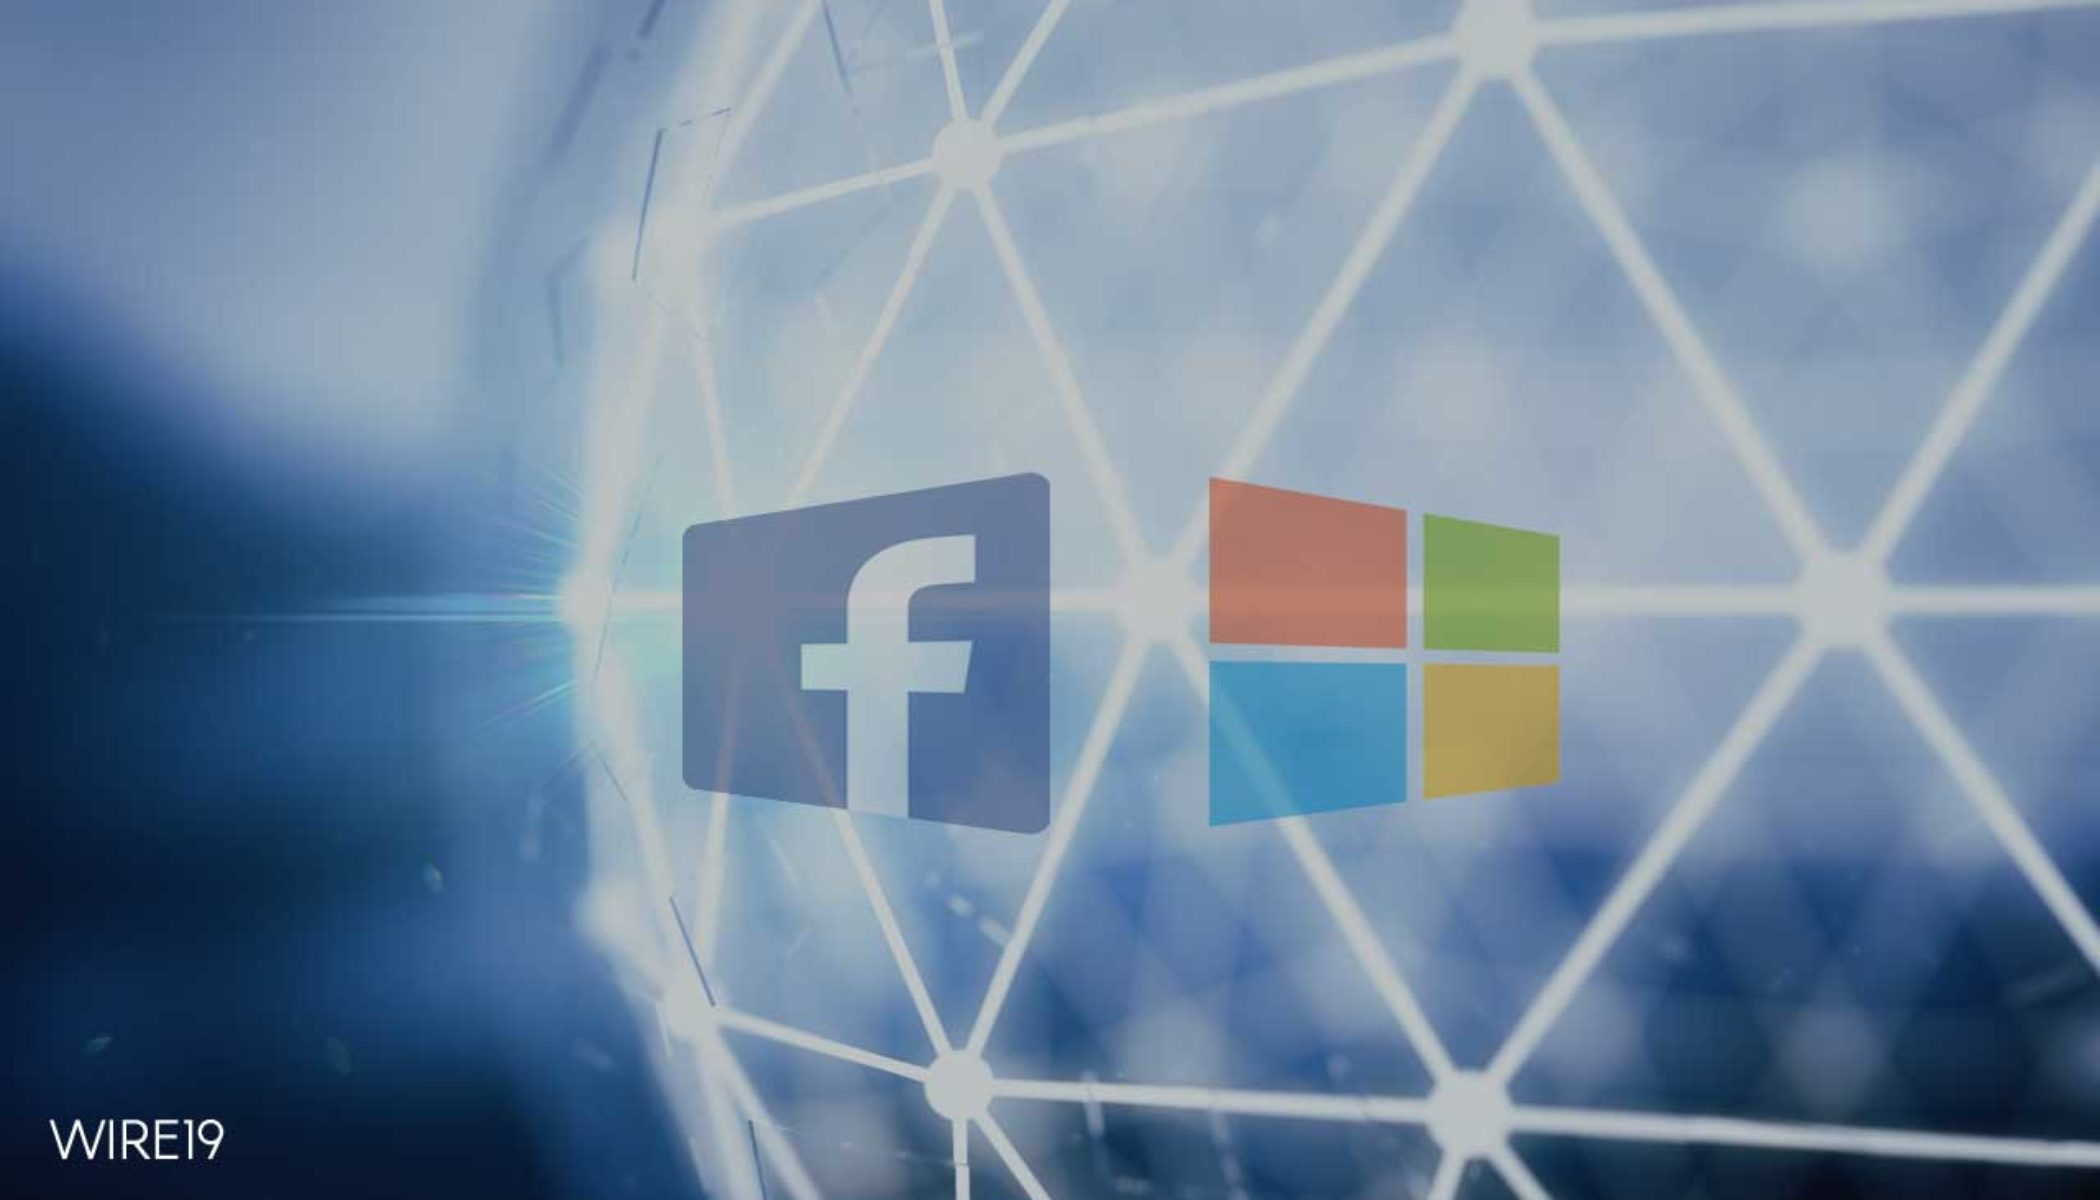 Microsoft and Facebook join hands to make artificial